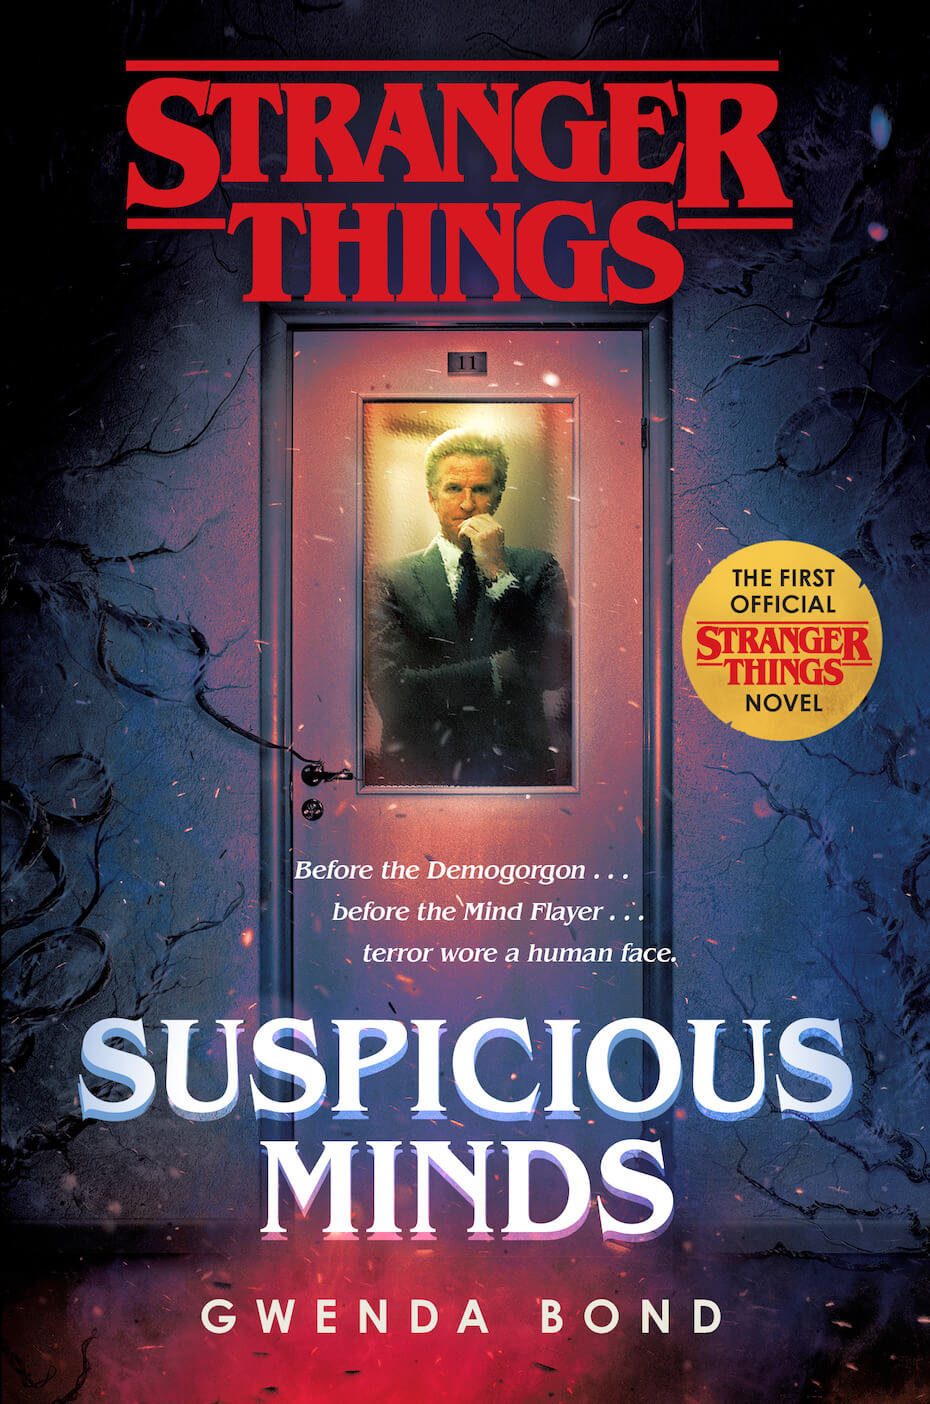 Stranger Things: Suspicious Minds book cover